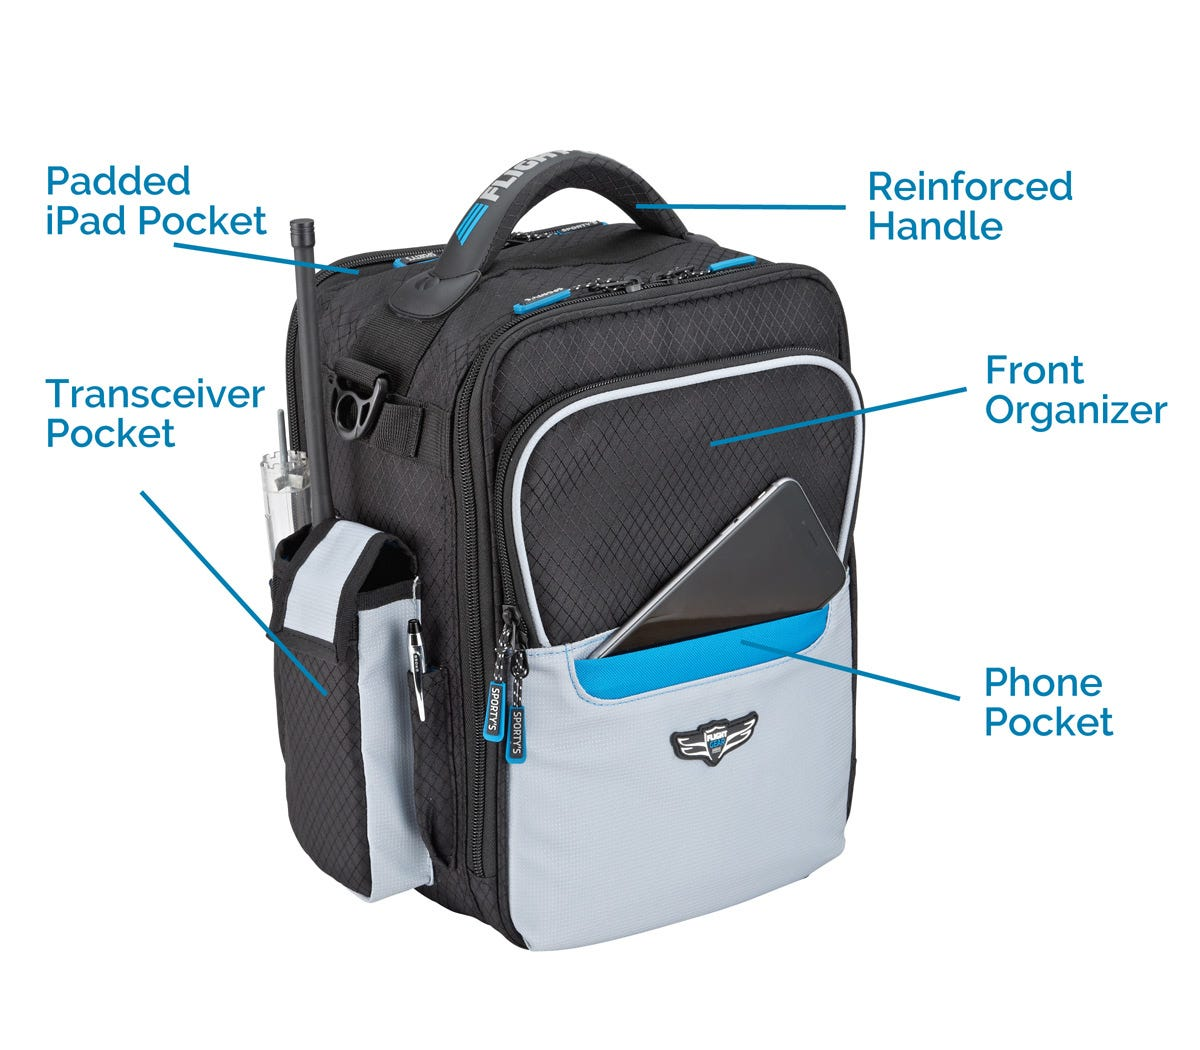 Ipad Bag Measures 12 W X 7 5 D 13 H Overall Optional Embroidery Available On The Front Flap